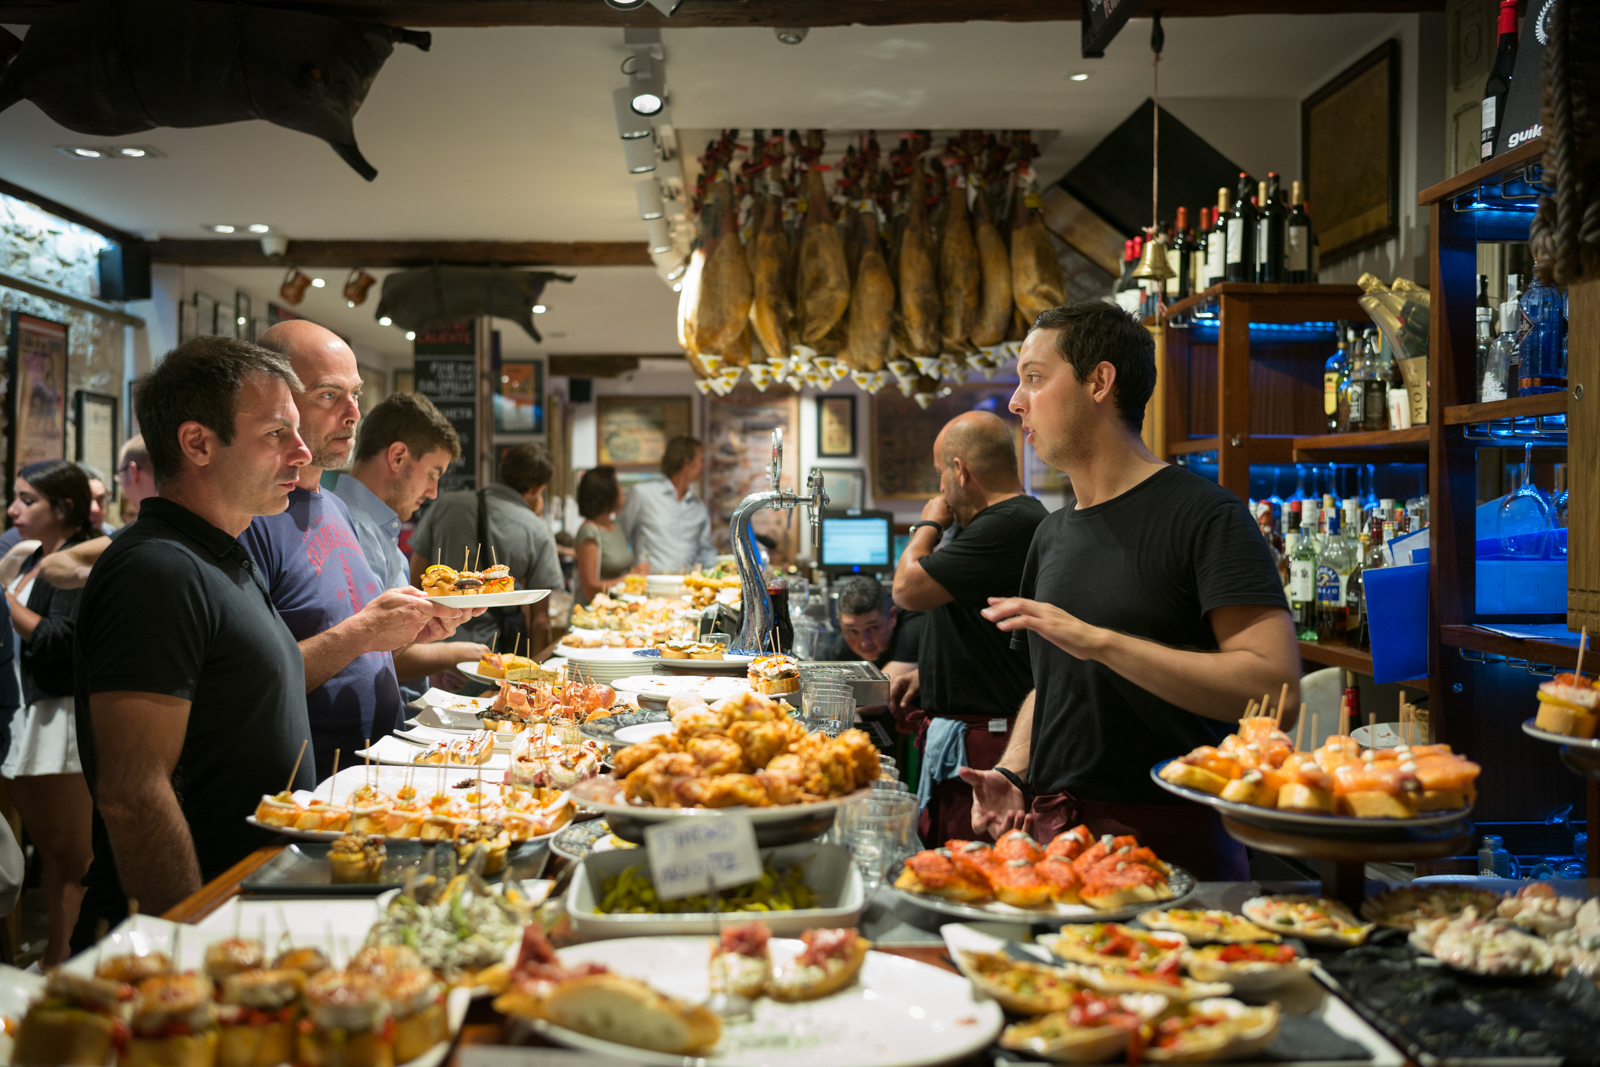 Tapas. (Photo by Tim Graham/Getty Images)